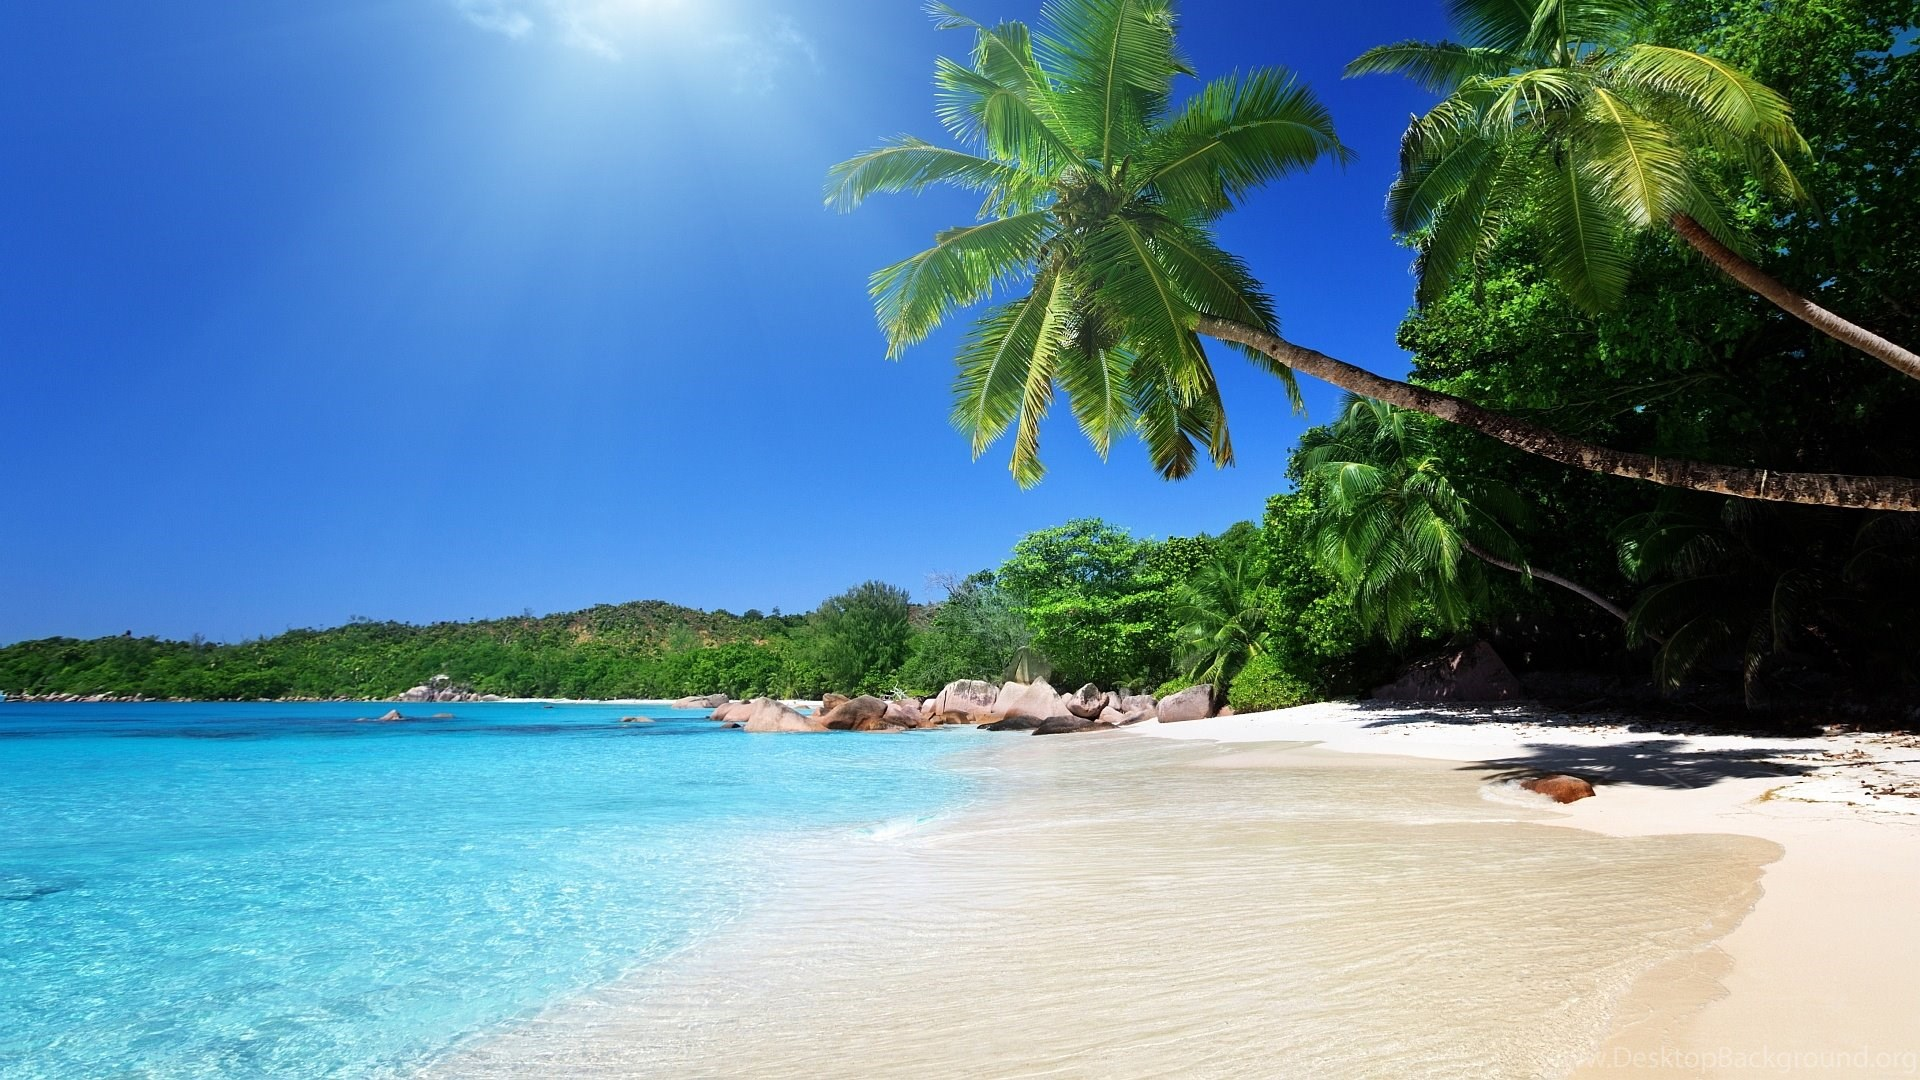 hd tropical beaches island wallpapers 1080p full size  desktop